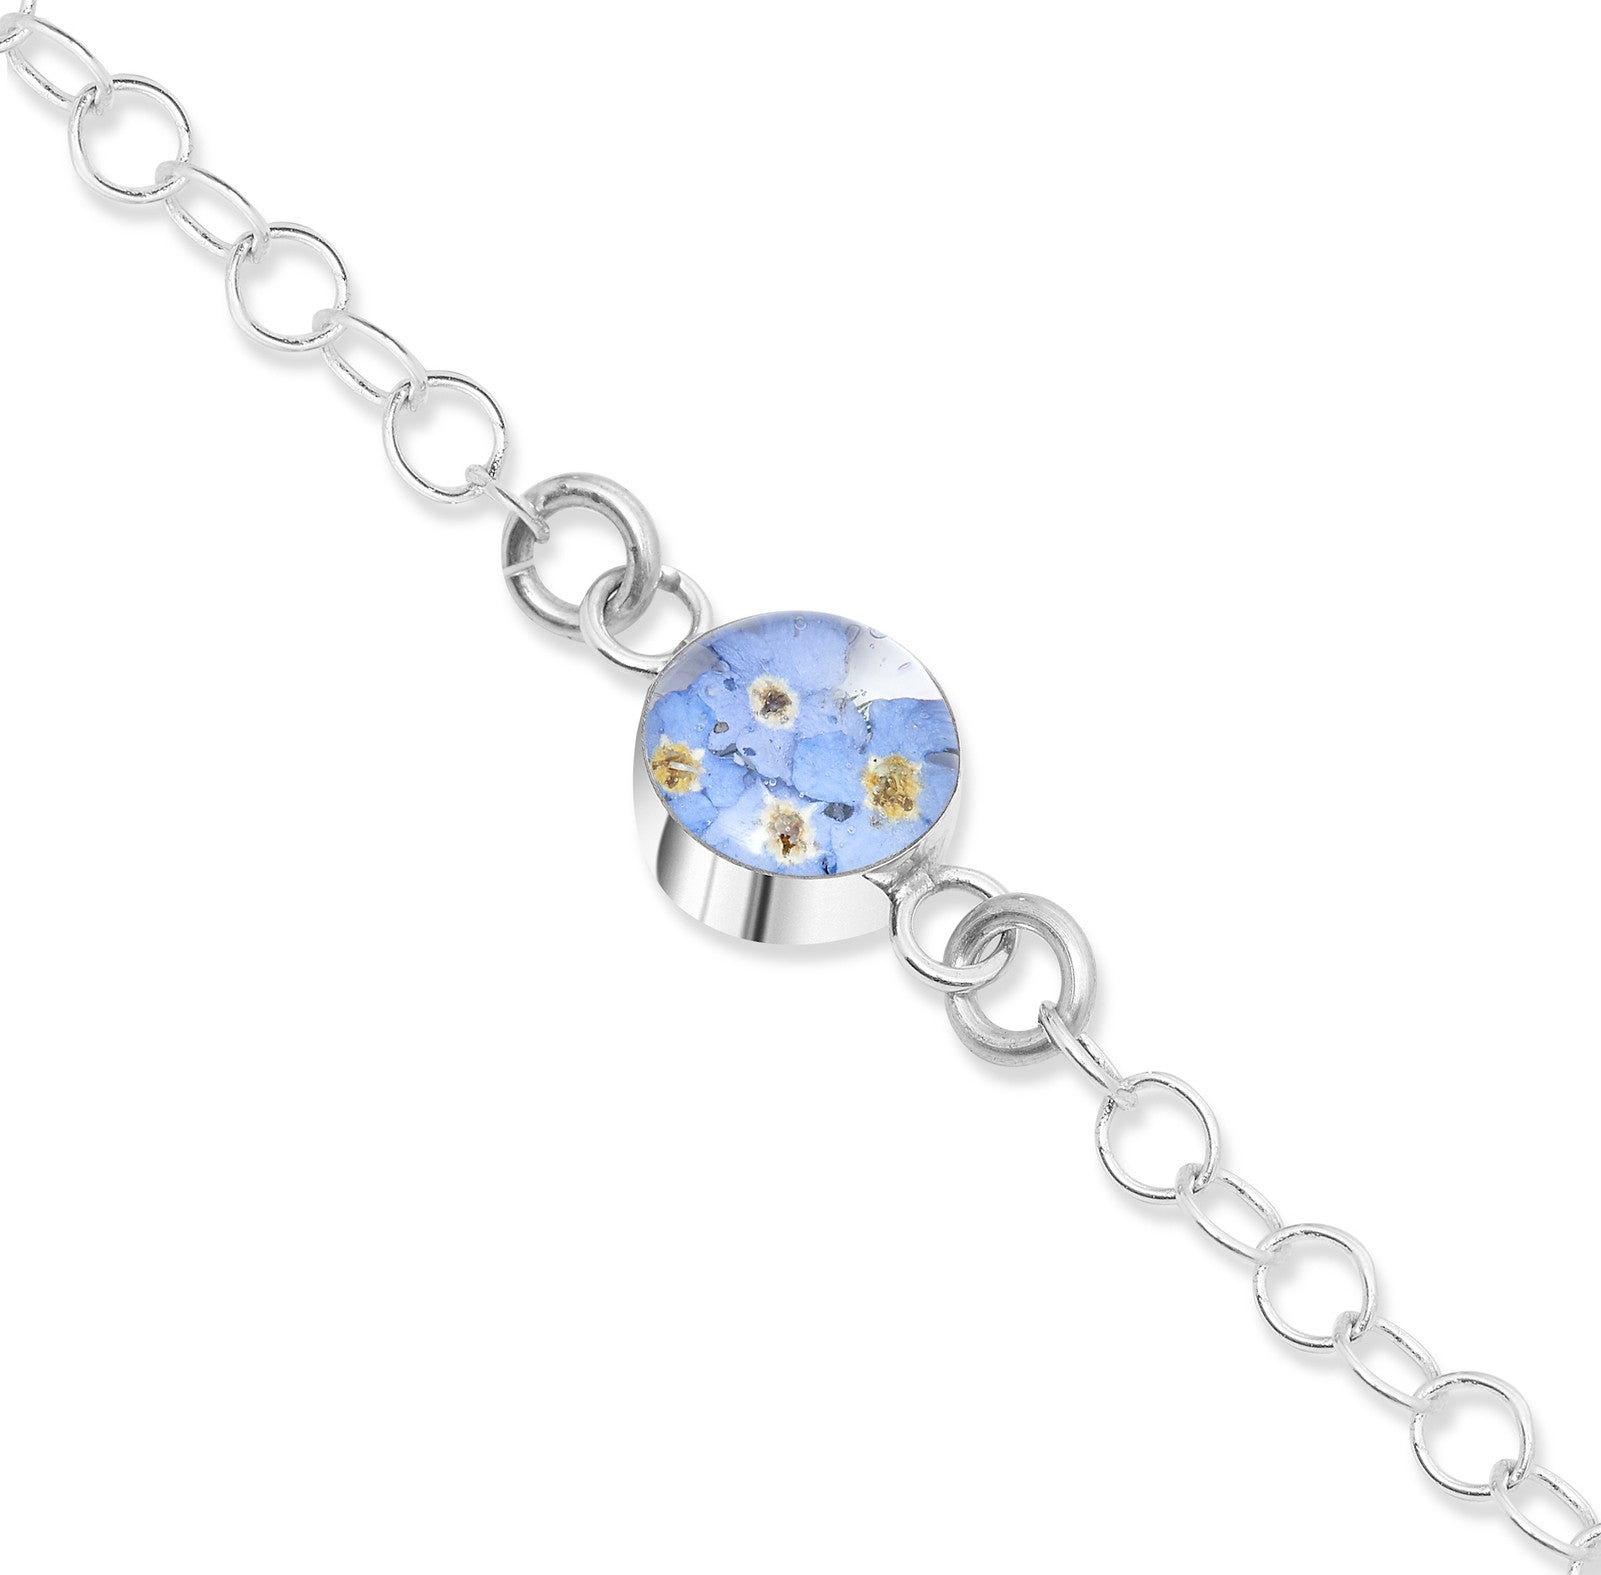 Silver Chain Bracelet - Forget-Me-Not - Round - Round link chain